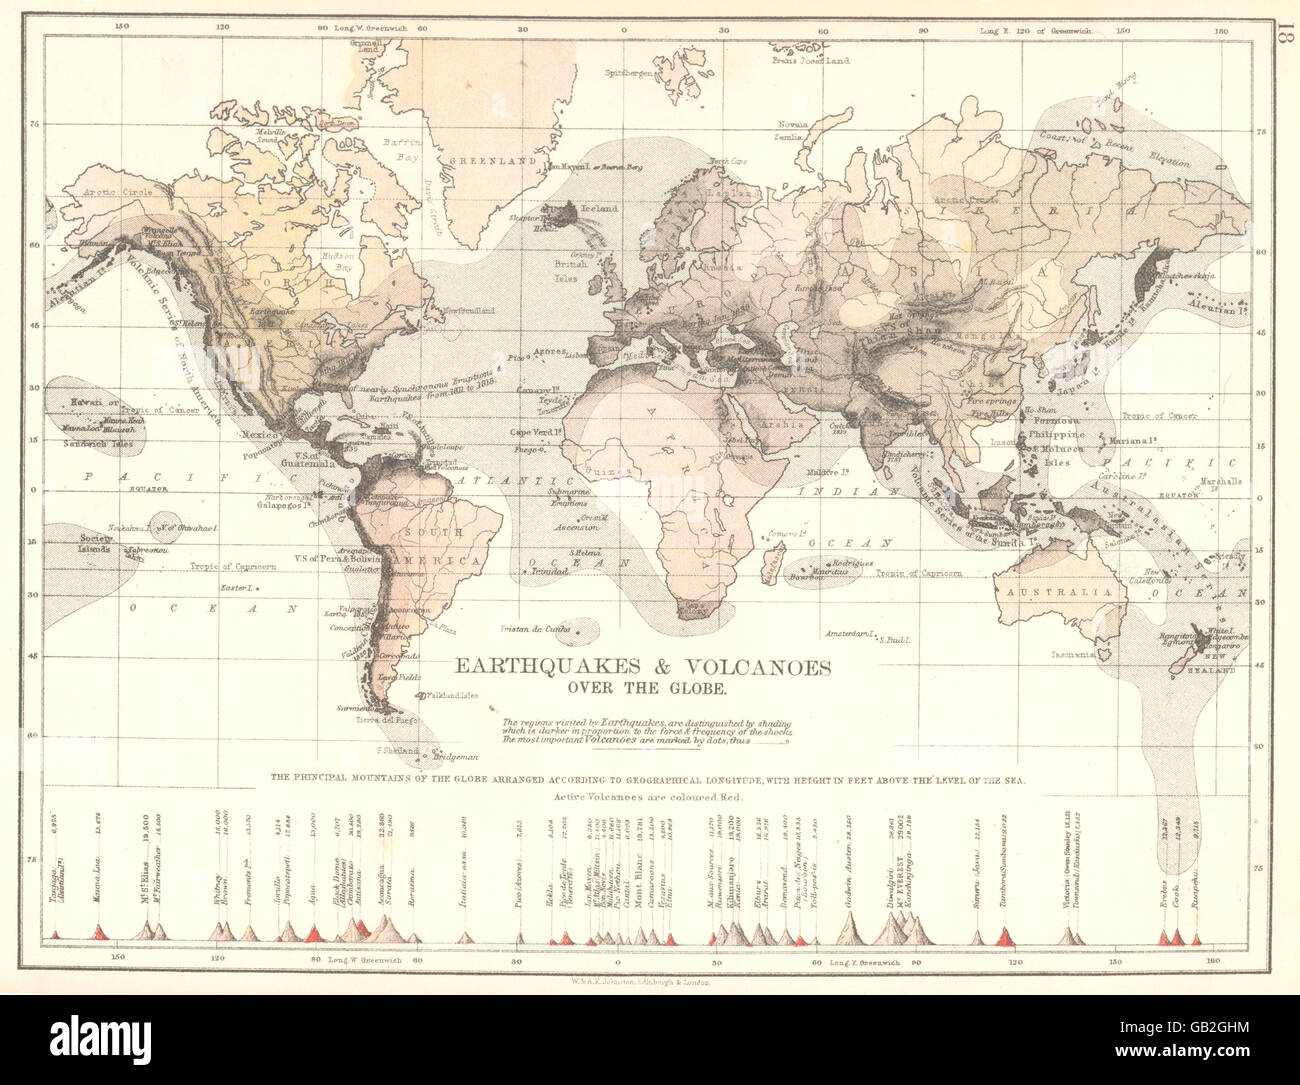 WORLD: Earthquakes & Volcanoes over the Globe, 1897 antique map - Stock Image